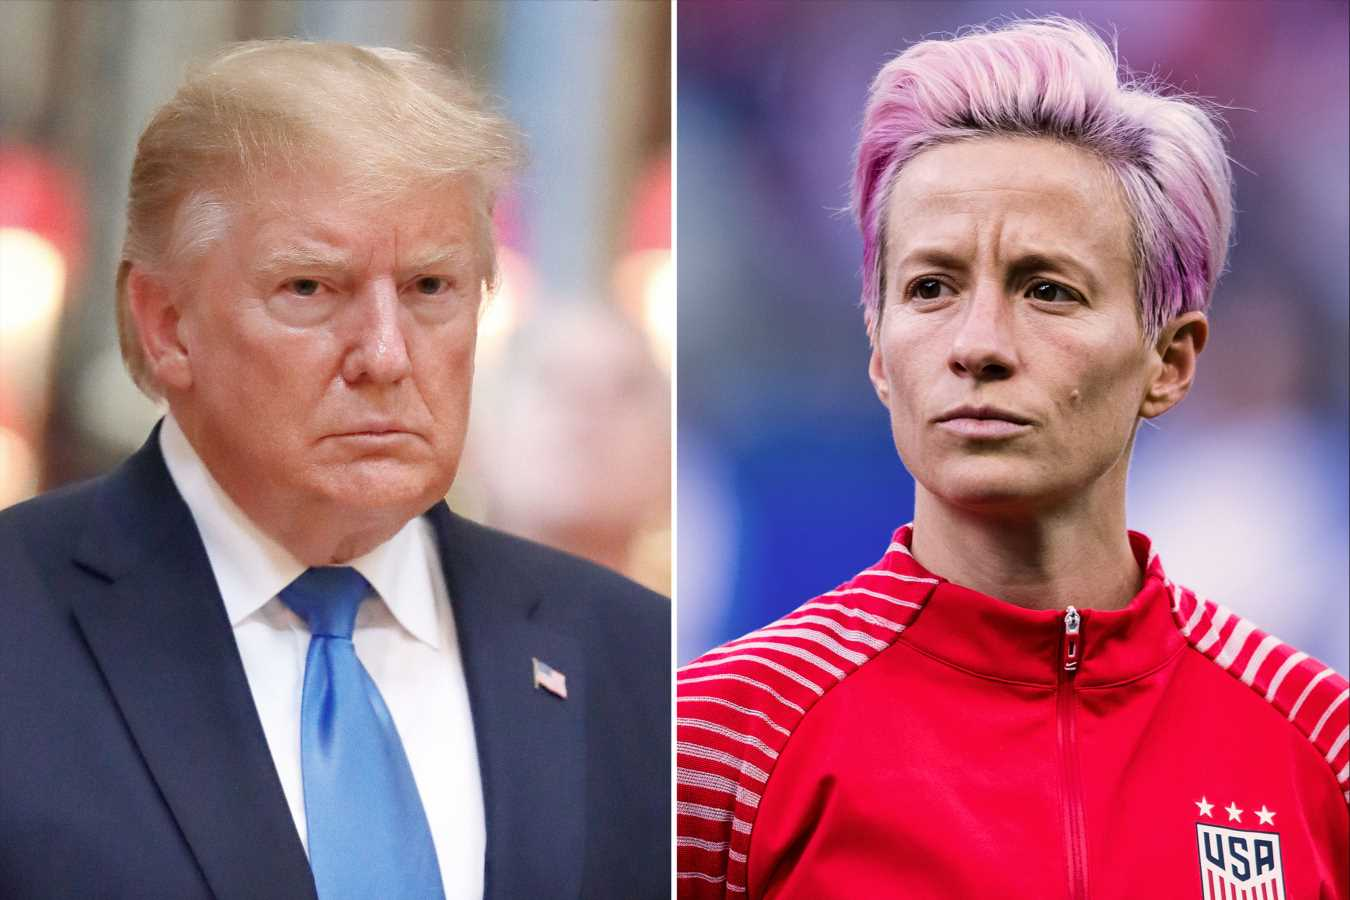 Megan Rapinoe Slams President Trump After World Cup Win: 'Your Message Is Excluding People'